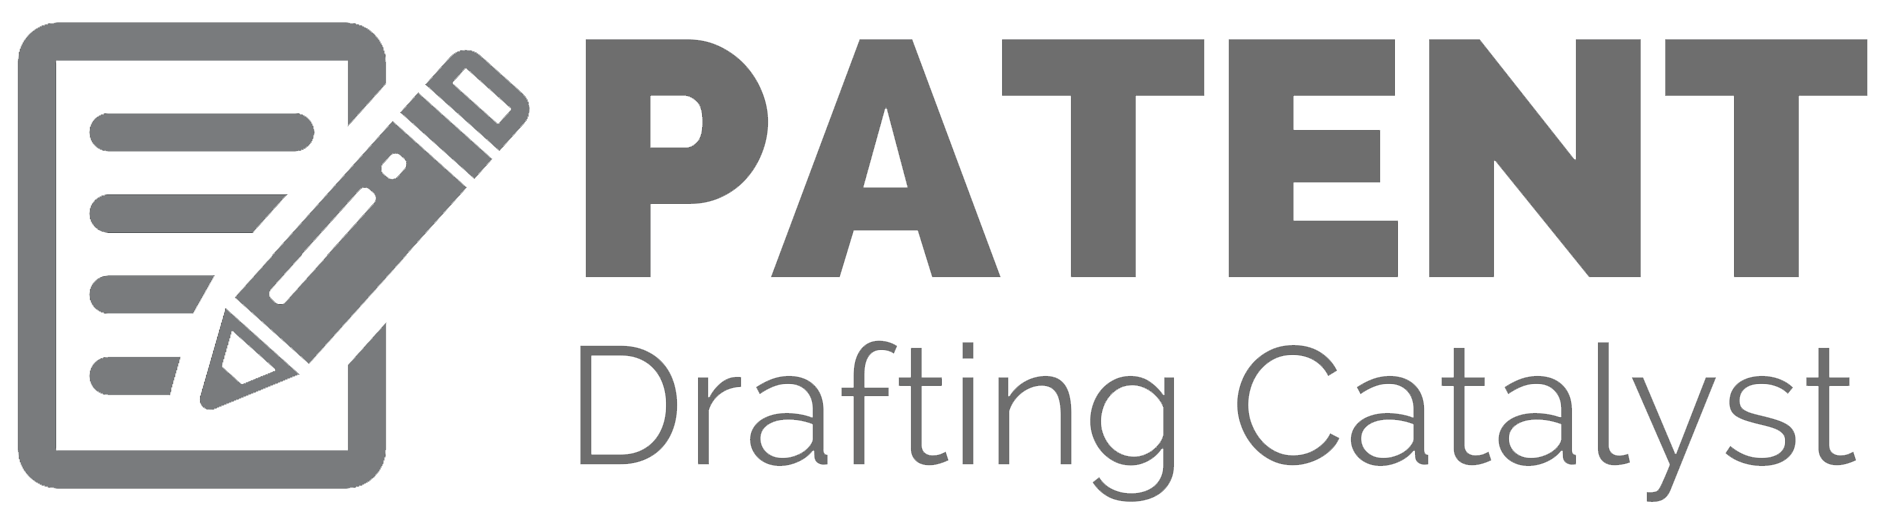 Patent Drafting Catalyst